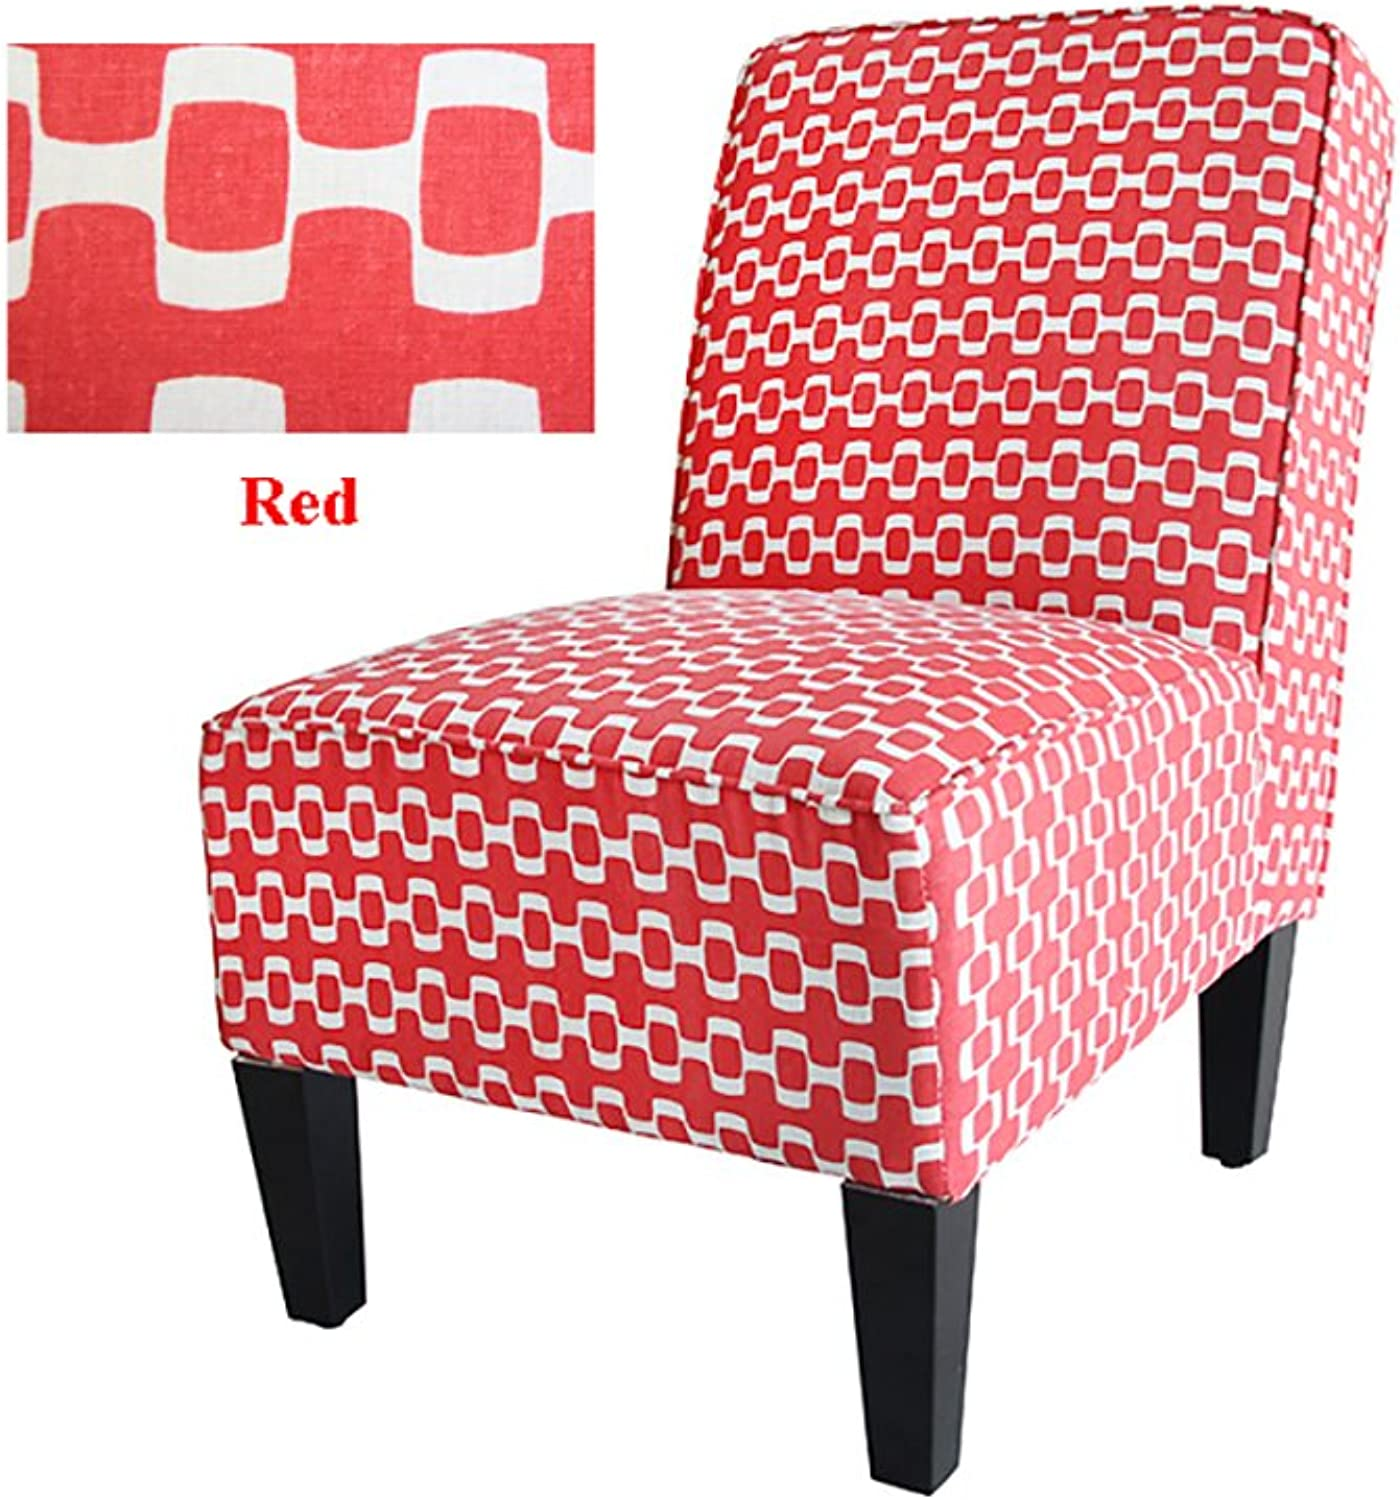 Cafe Lounge Couch Ramie Cotton Fabric Accent Dining Relax Chair Pub Seat Kitchen (RED)